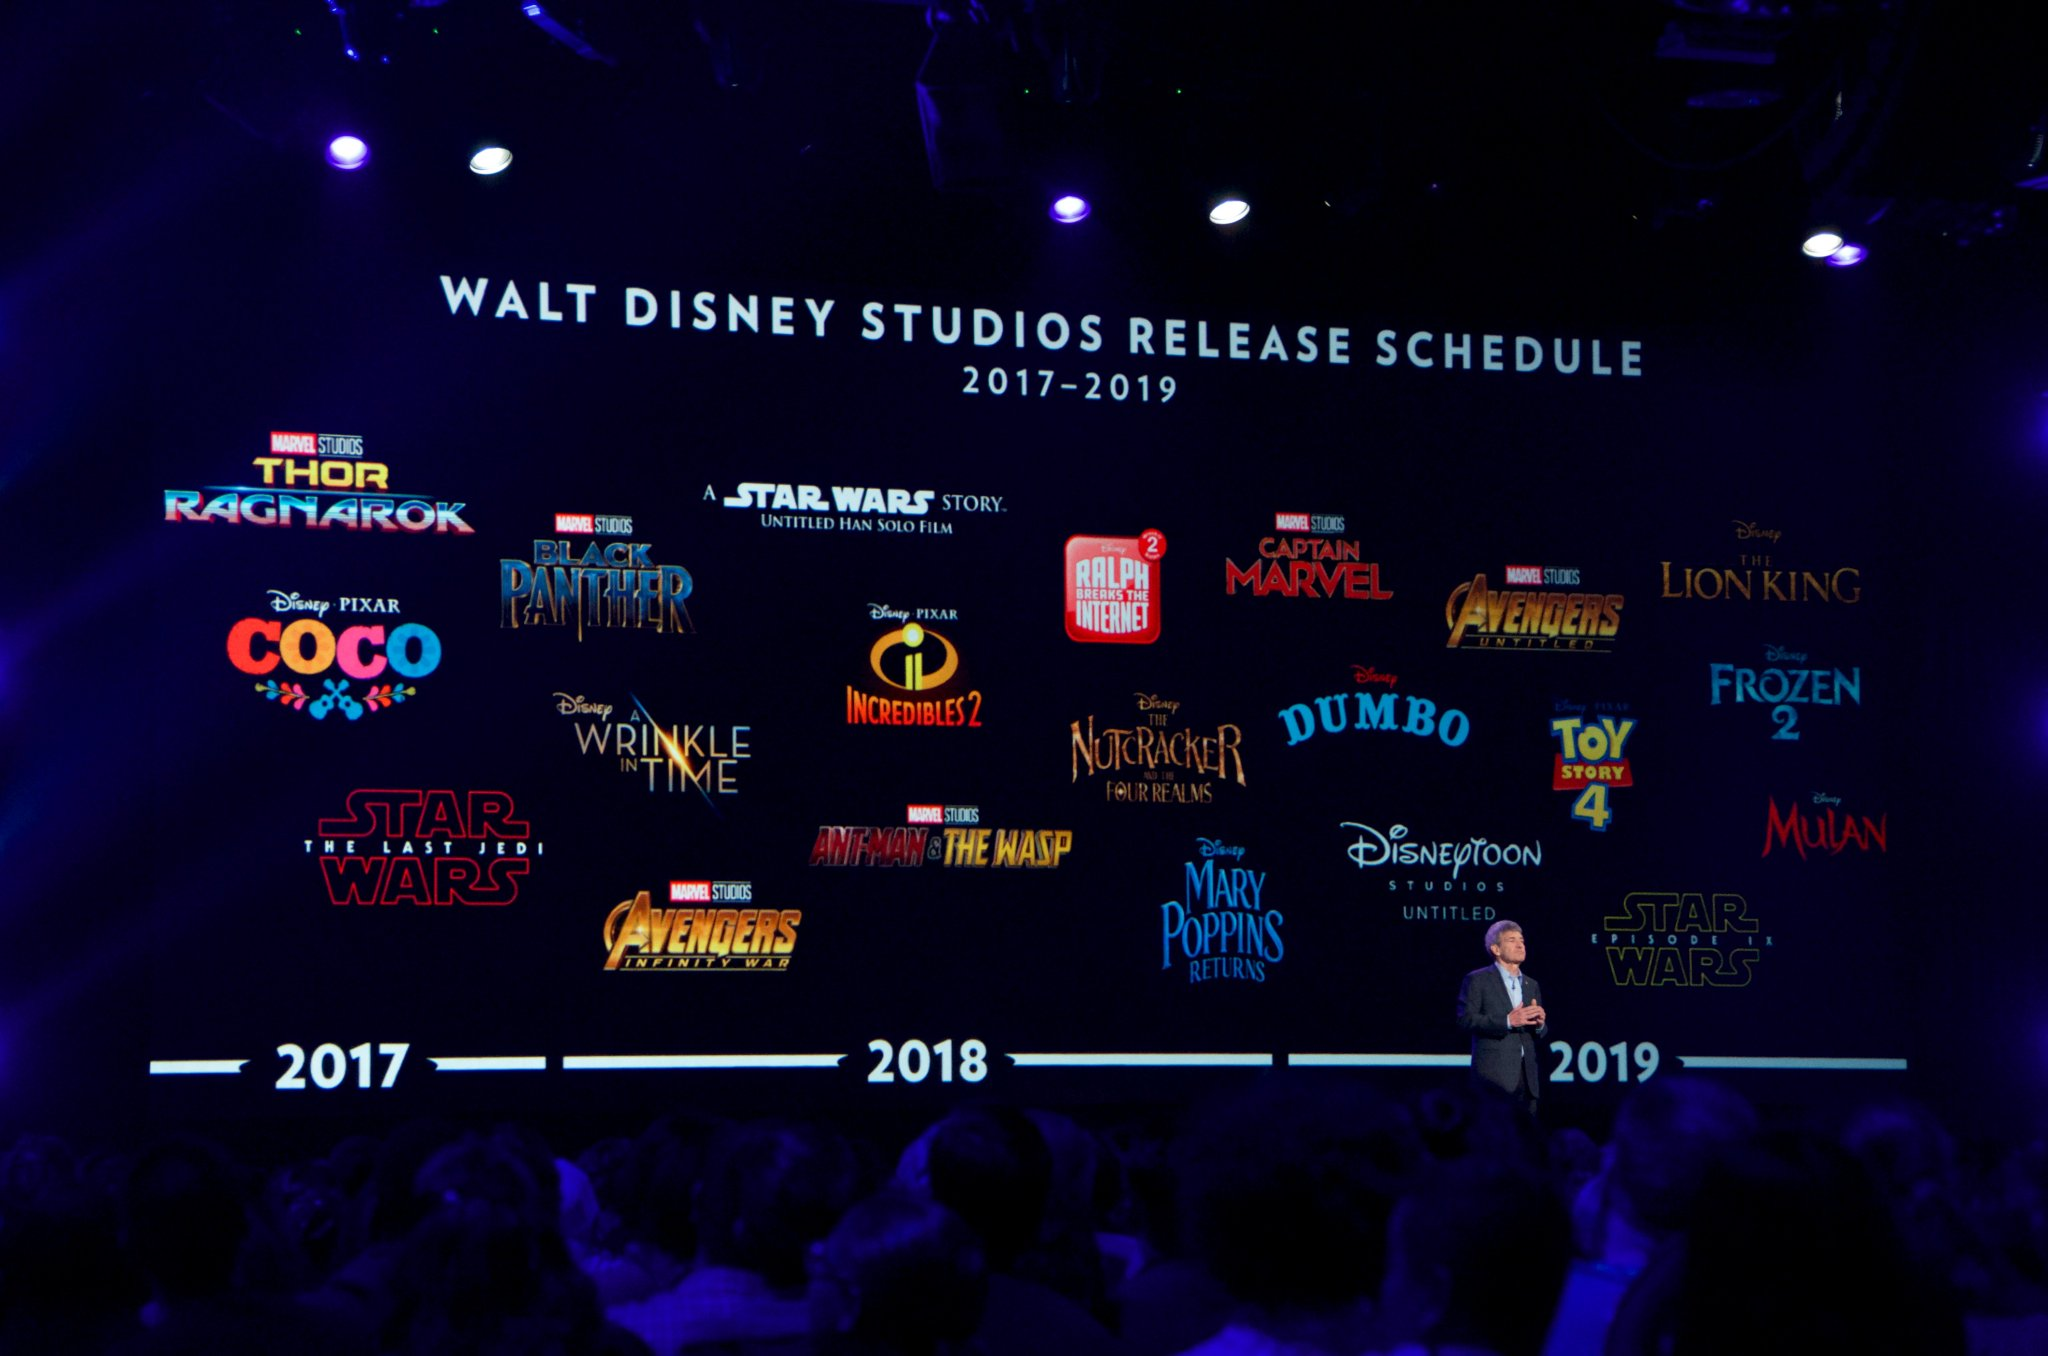 All Movies Coming Out This Year 2018 With Release Dates and